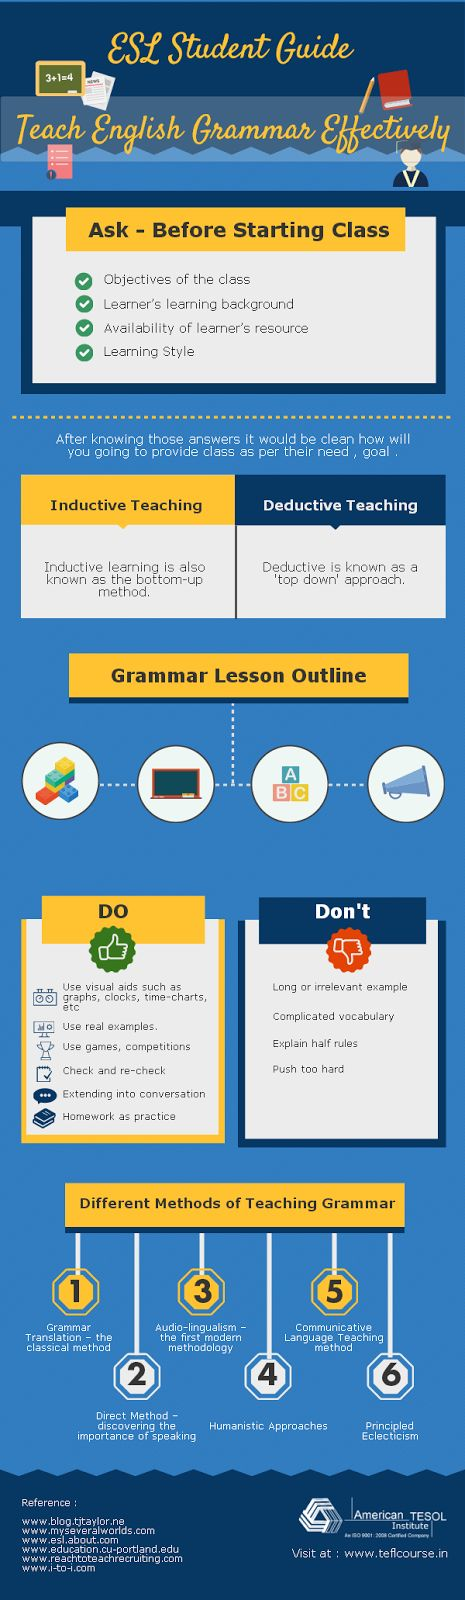 #ESL Student Guide – #Teach English #Grammar Effectively